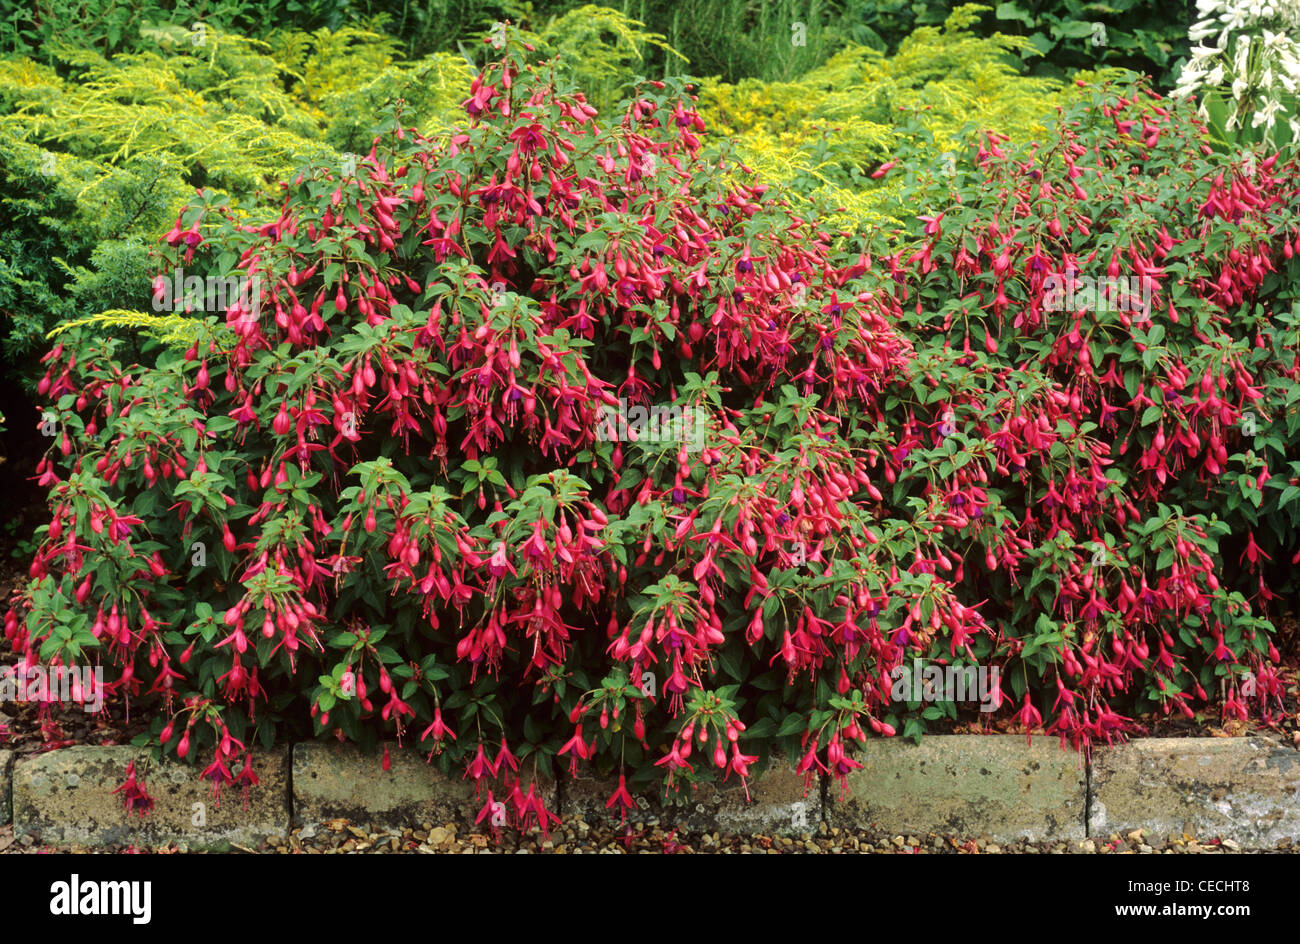 Fuchsia U0027Tom Thumbu0027, Border Edge Red Flower Flowers Fuchsias Garden Plant  Plants